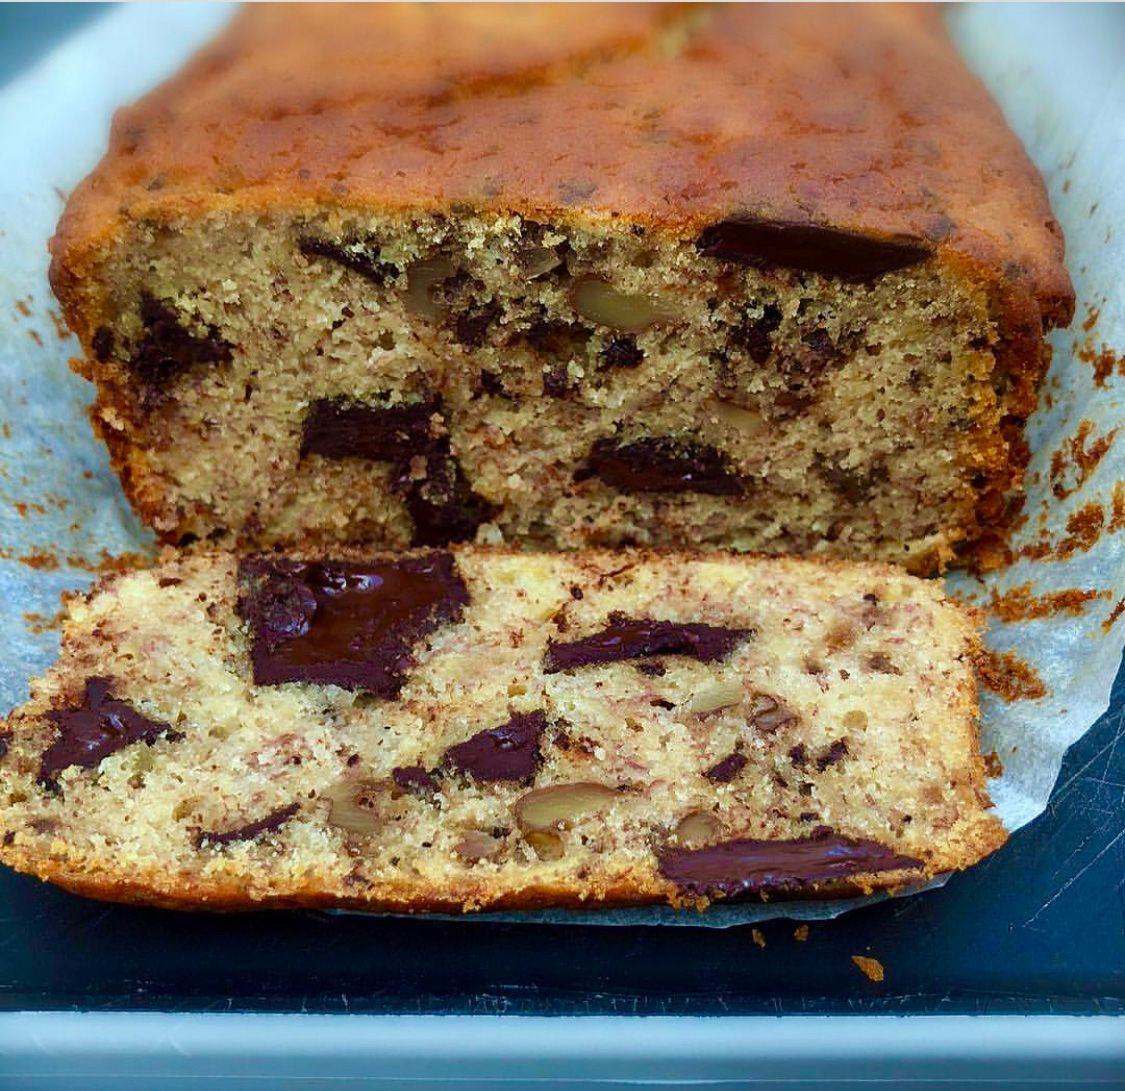 GIuten Free Banana Bread:  am a woman of my word, and I promised a gluten-free banana bread. Here, finally, it is. I took my time with it, because I wanted to get it right. I'm not interested in anything that is 'good for gluten-free': it has to offer universal delight.